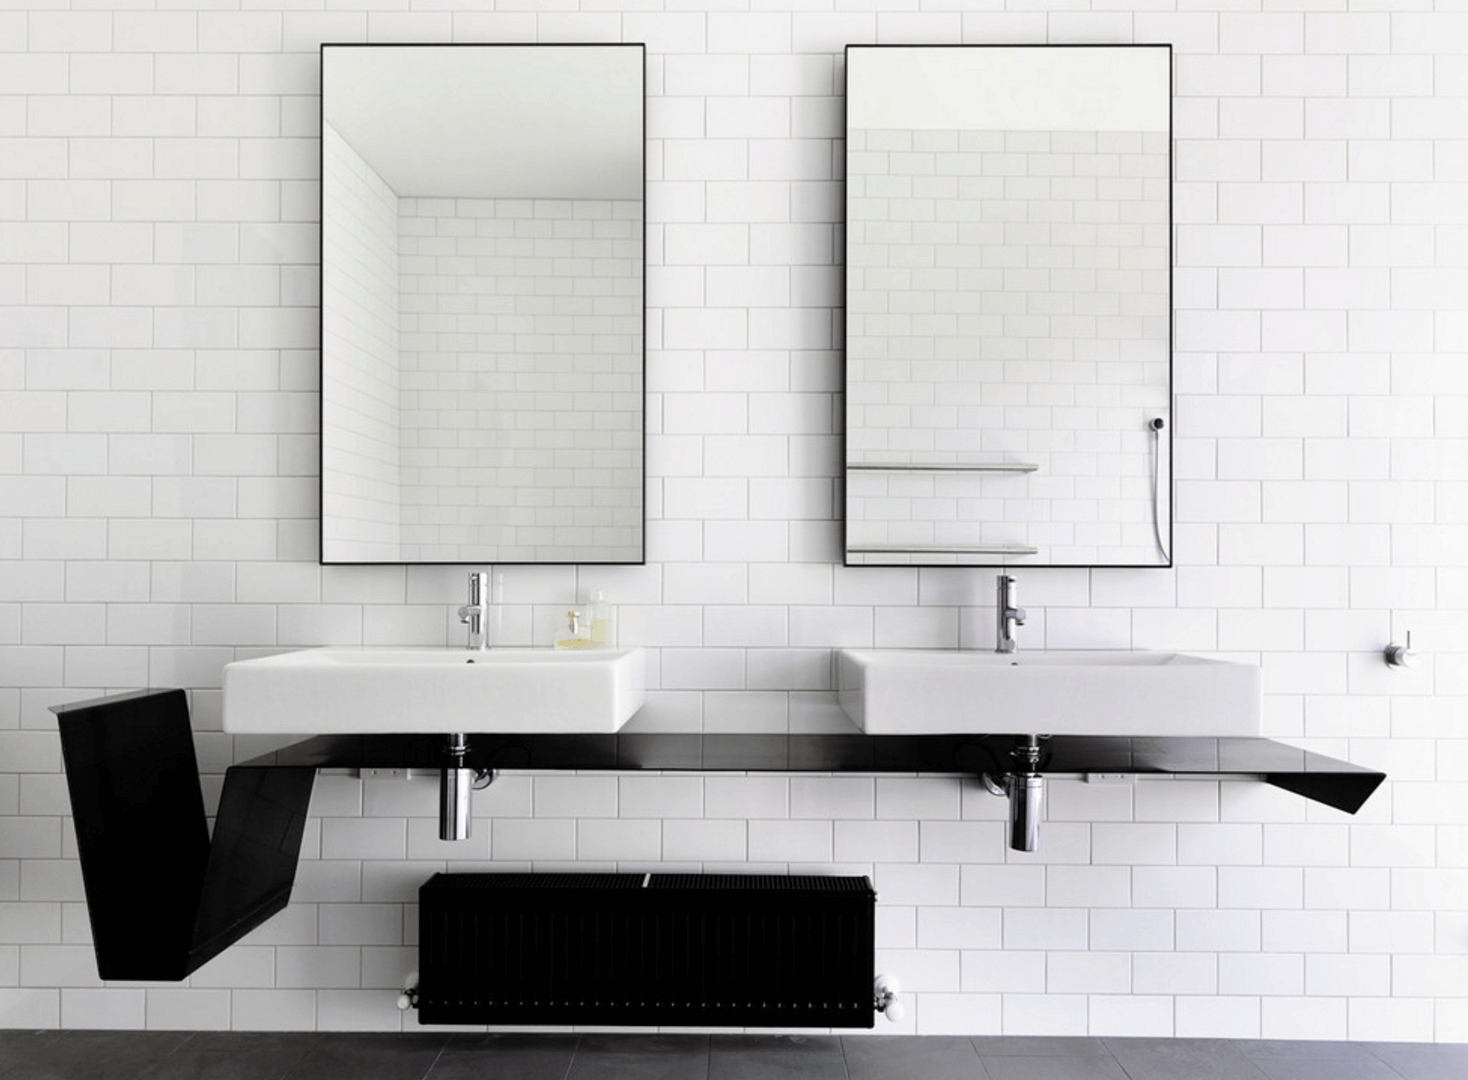 22 Bathroom Mirror Ideas for Different Effect - Talkdecor